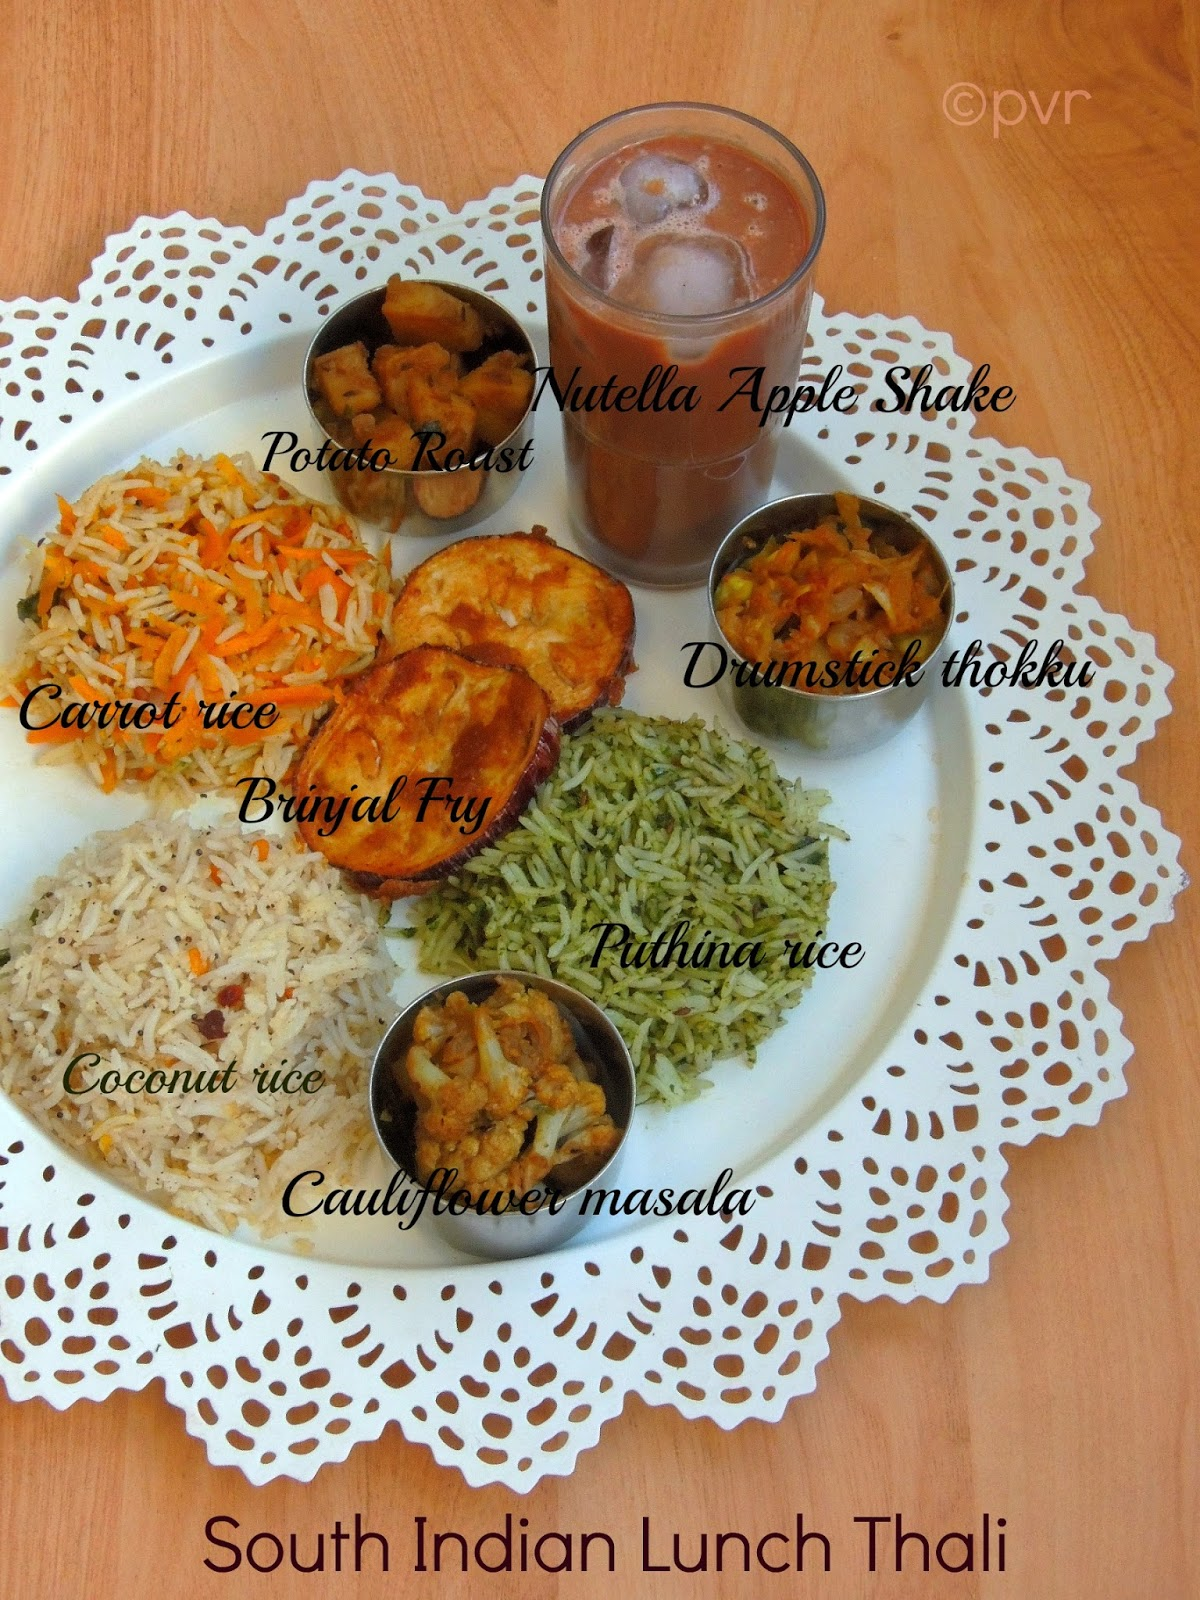 Priyas versatile recipes south indian lunch thali with nutella priyas versatile recipes south indian lunch thali with nutella apple shake a virtual birthday party for manjula forumfinder Gallery